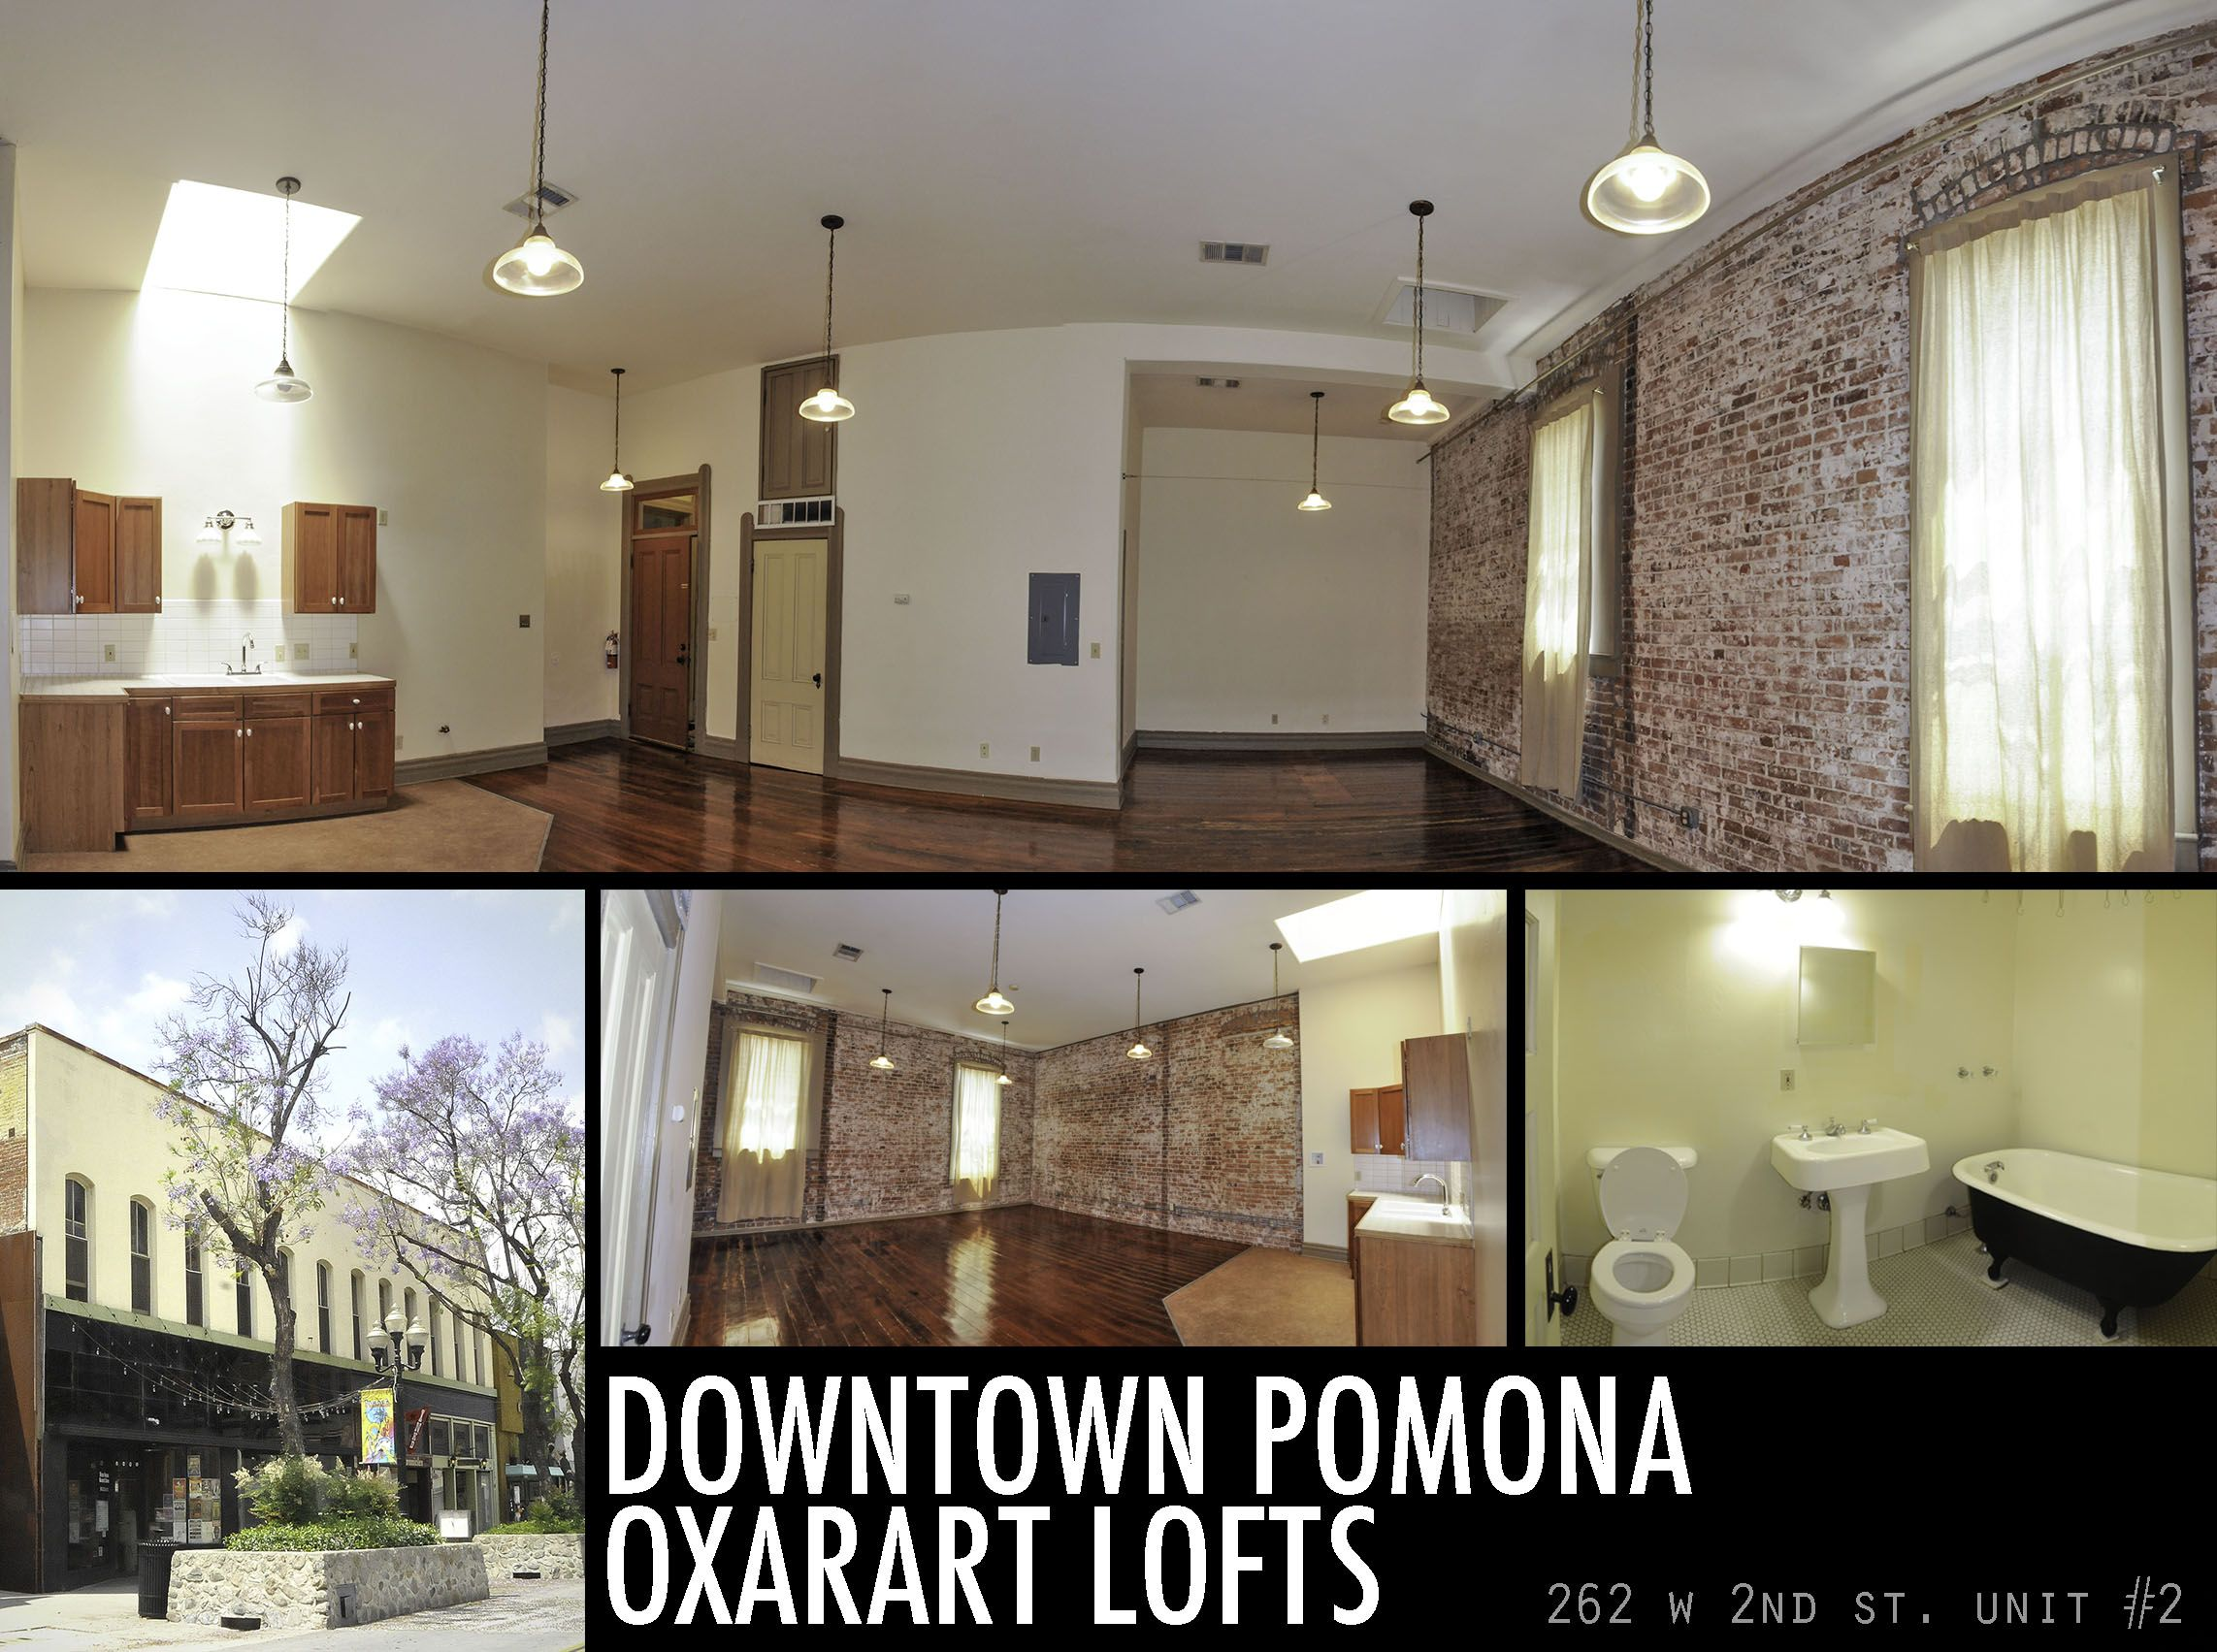 Oxarart Lofts In Downtown Pomona  Ca  Loft Living  Historic Building  Loft With Historic Charm